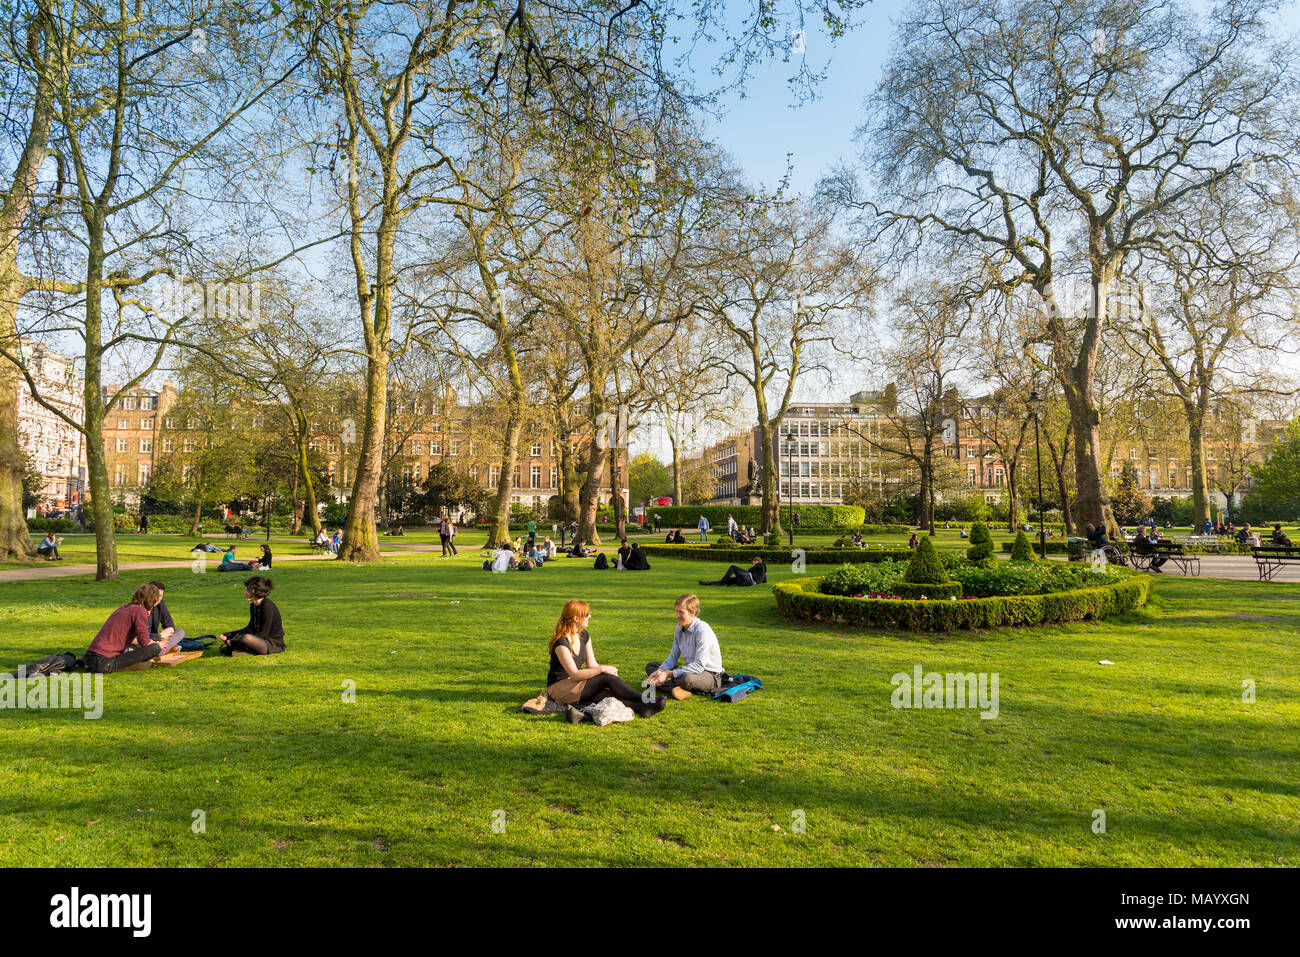 People sitting on the grass in Russell Square, Bloomsbury, London, UK - Stock Image